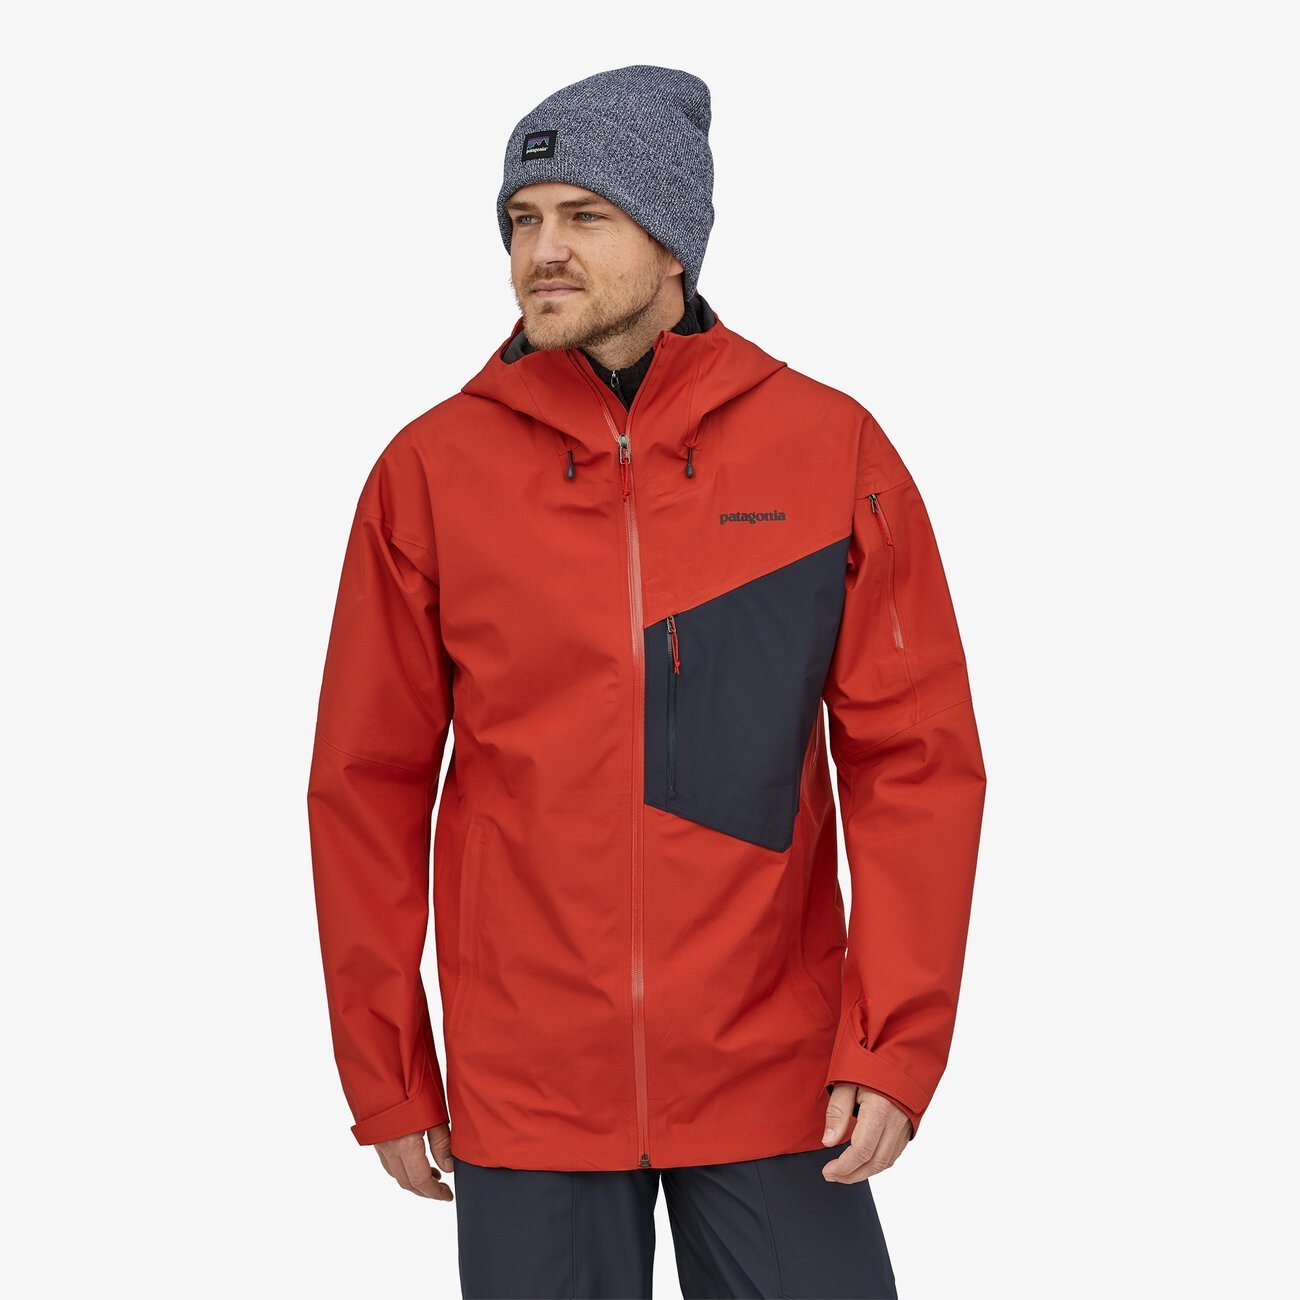 Patagonia - M's Snowdrifter Jkt - Recycled Polyester - Weekendbee - sustainable sportswear